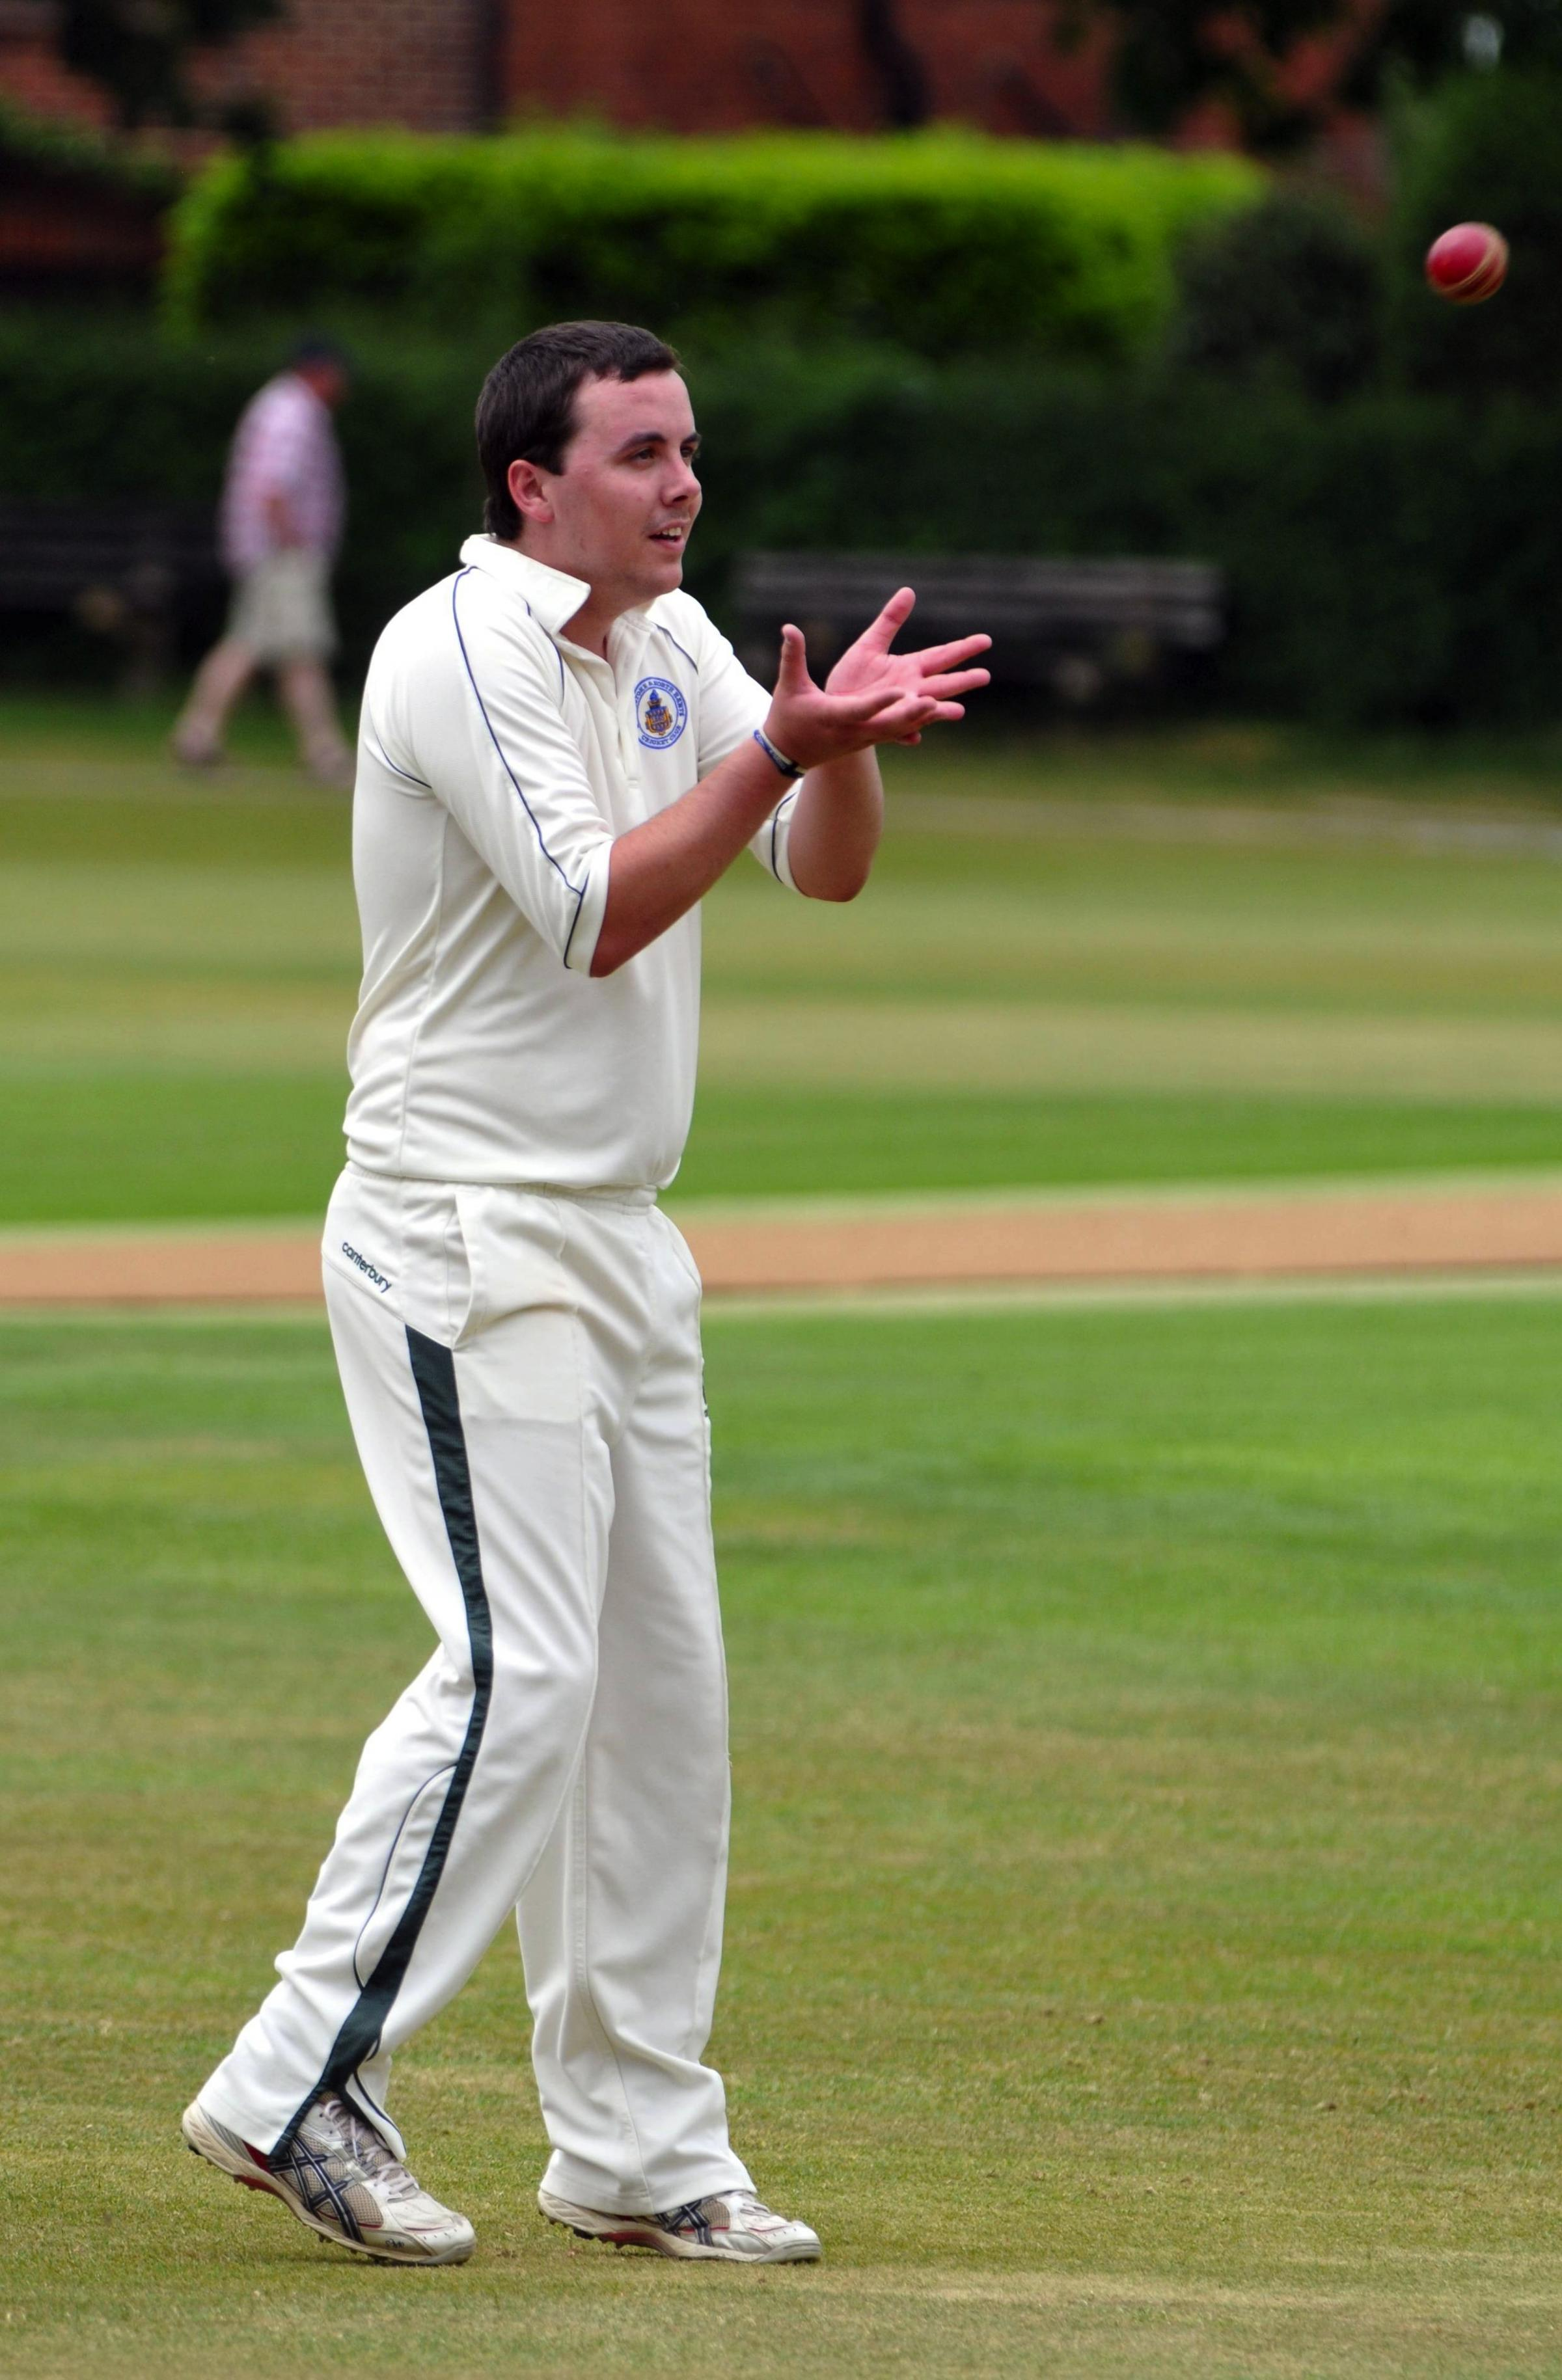 Martyn James took the opening wicket